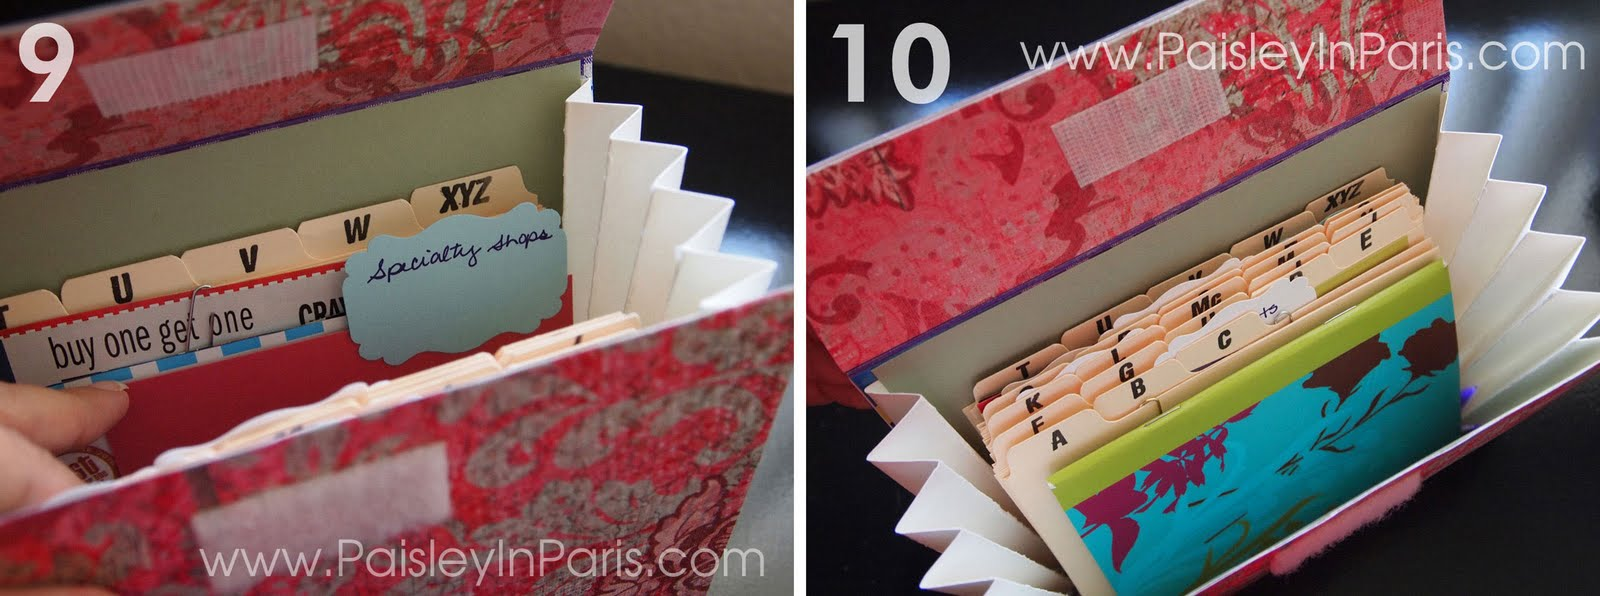 4x6 coupon organizer